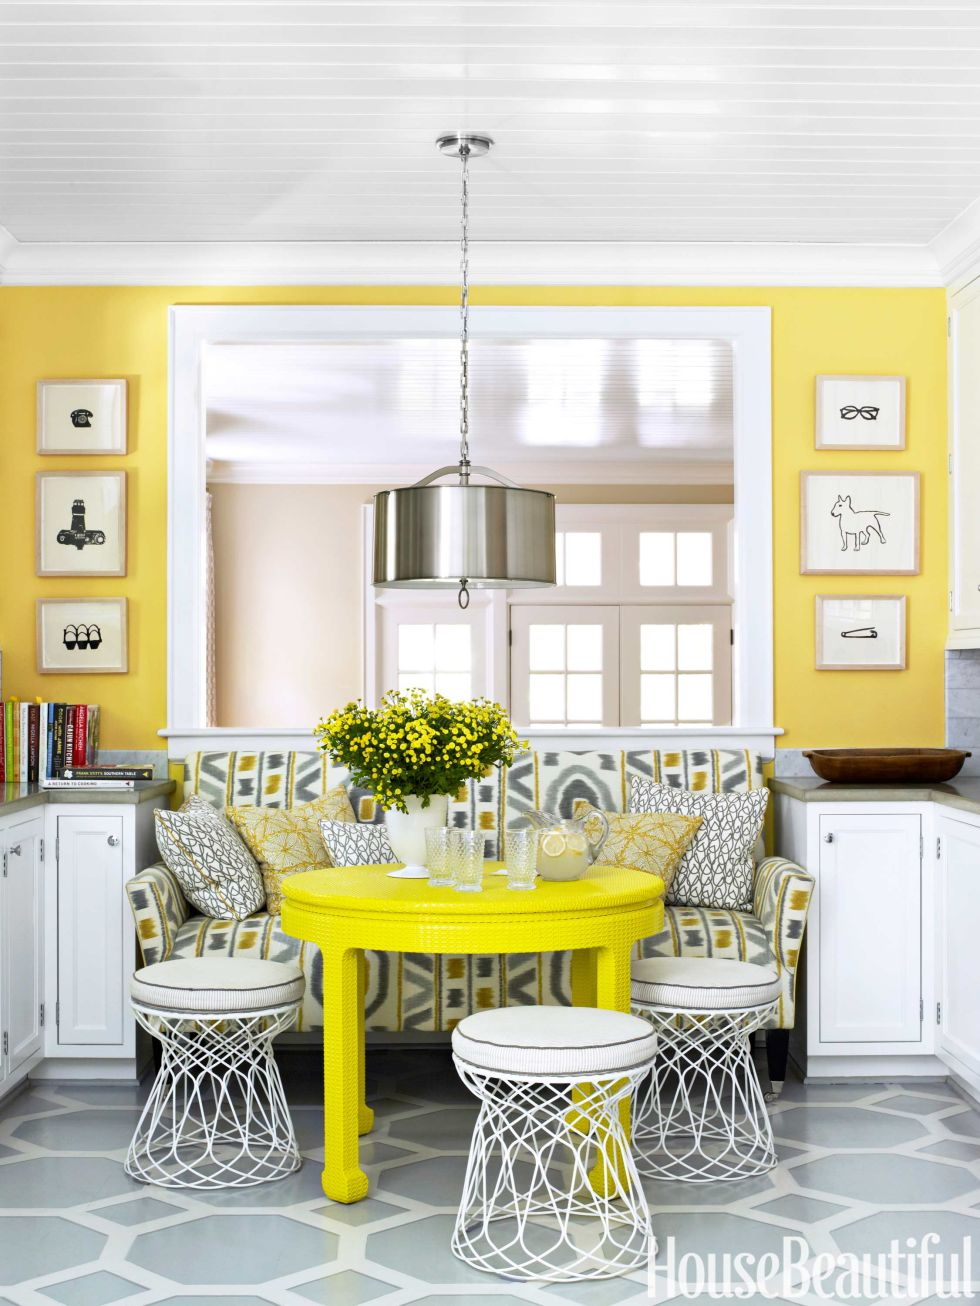 new spring decorating ideas - how to decorate for spring